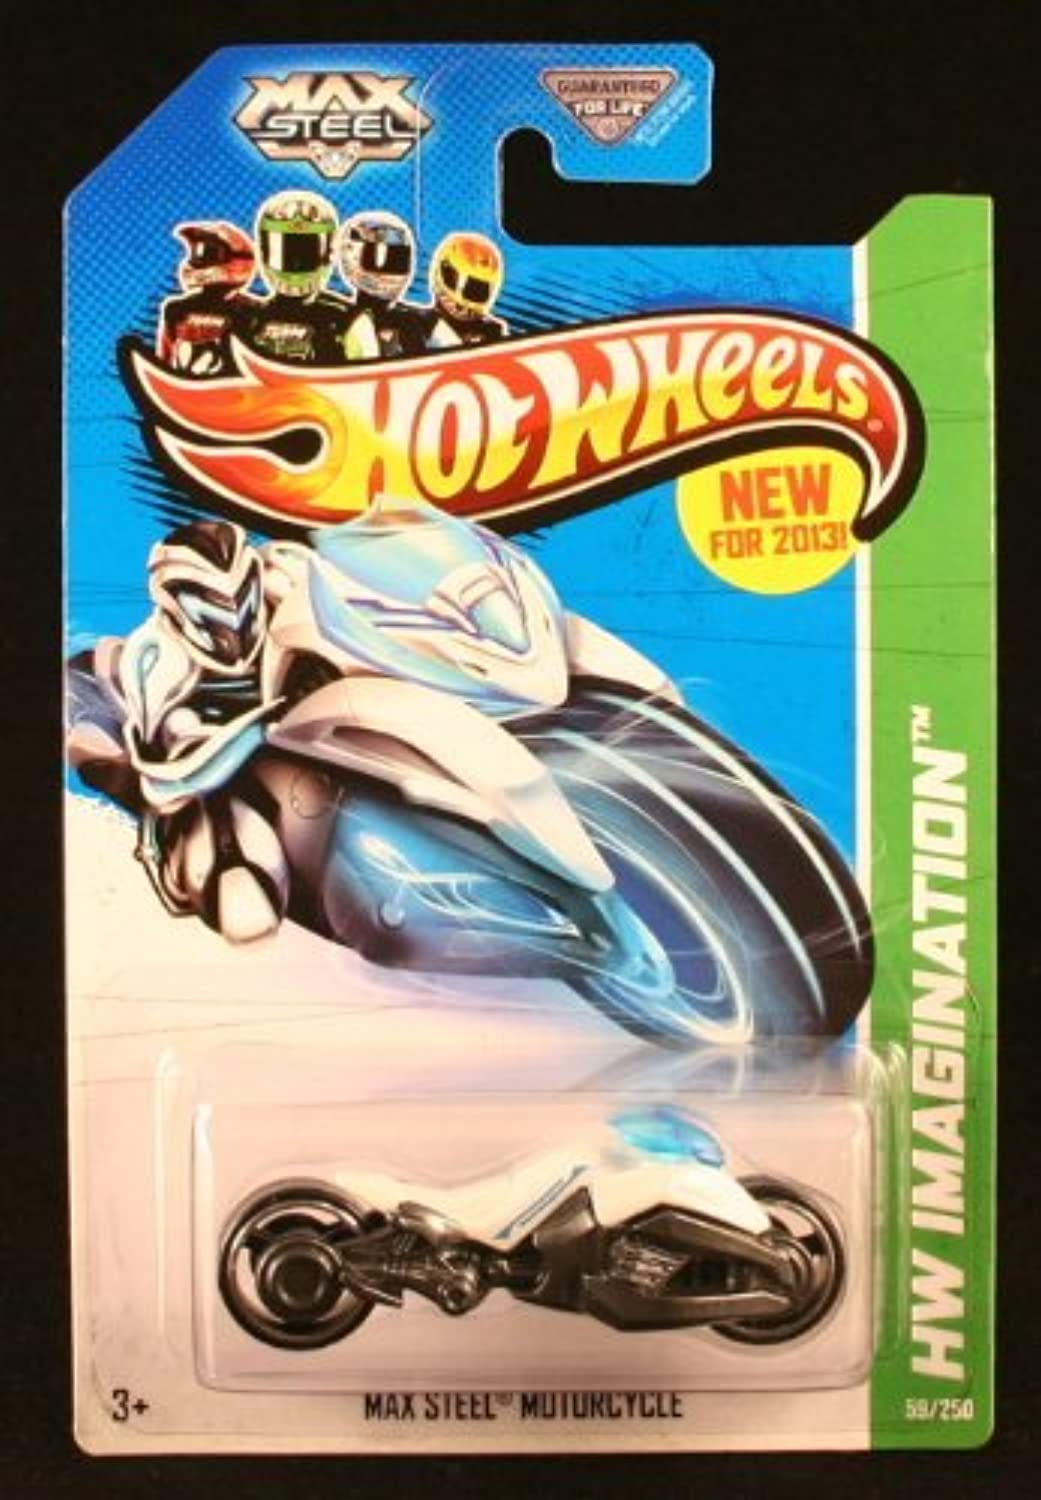 Max Steel Motorcycle '13 Hot Wheels 59 250 (White) Vehicle by Hot Wheels